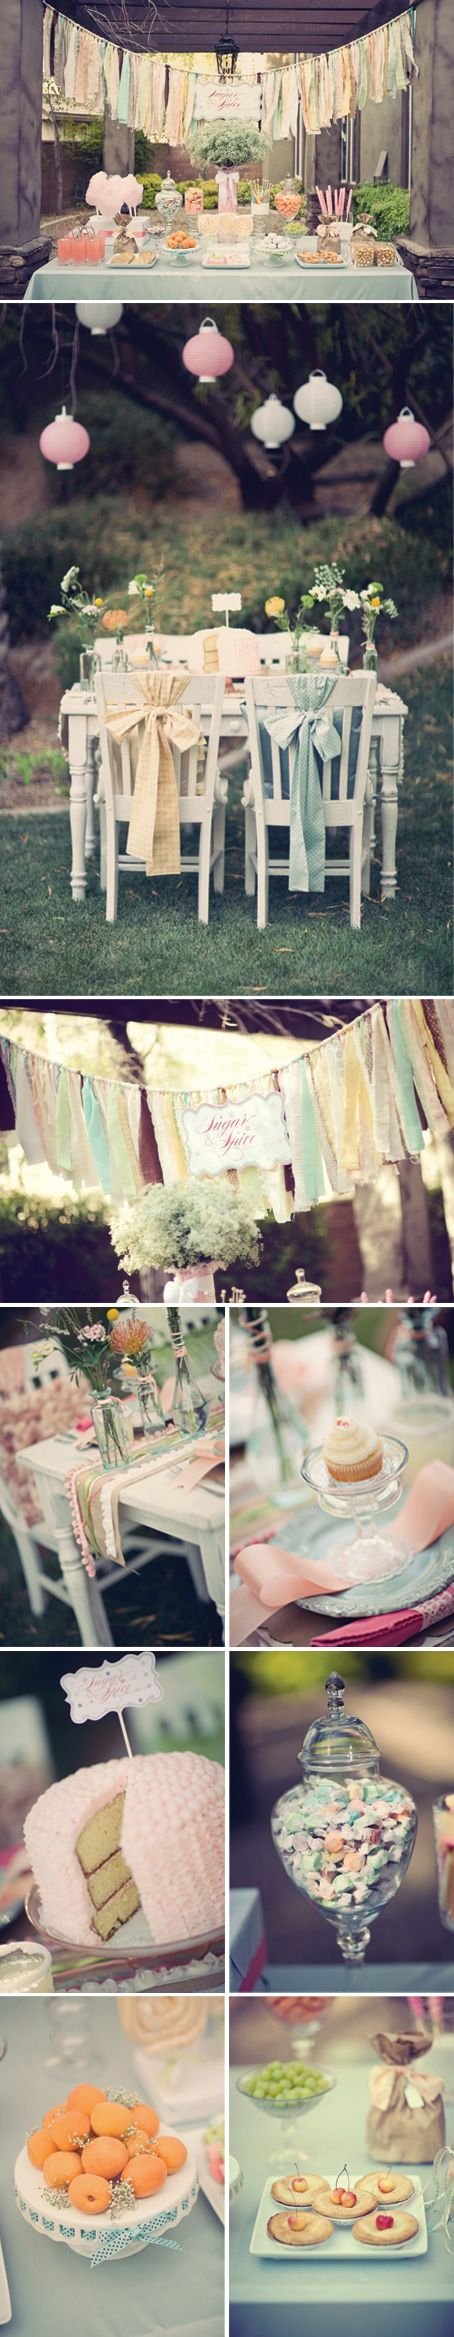 Love this candy bar: Vintage Baby Shower Ideas, Baby Shower Chair Decorations, Vintage Baby Girl Shower Ideas, Vintage Baby Showers, Outdoor Baby Shower, Baby Shower Ideas Vintage, Vintage Babyshower Ideas, Party Idea